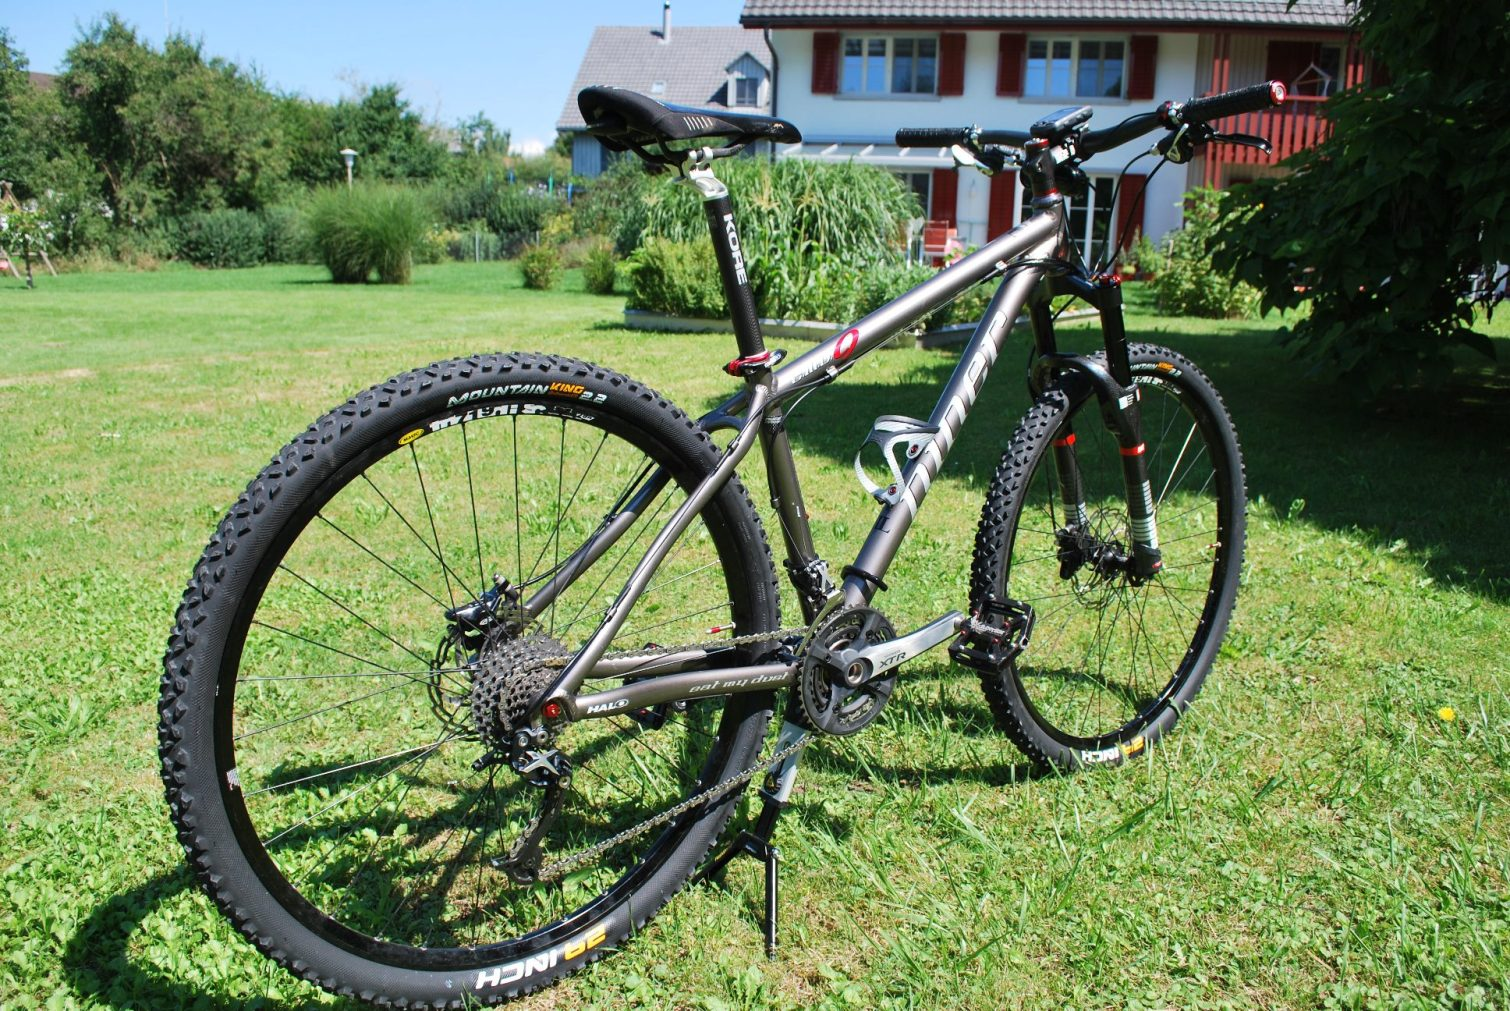 Post Pictures of your 29er-dsc_0682.jpg